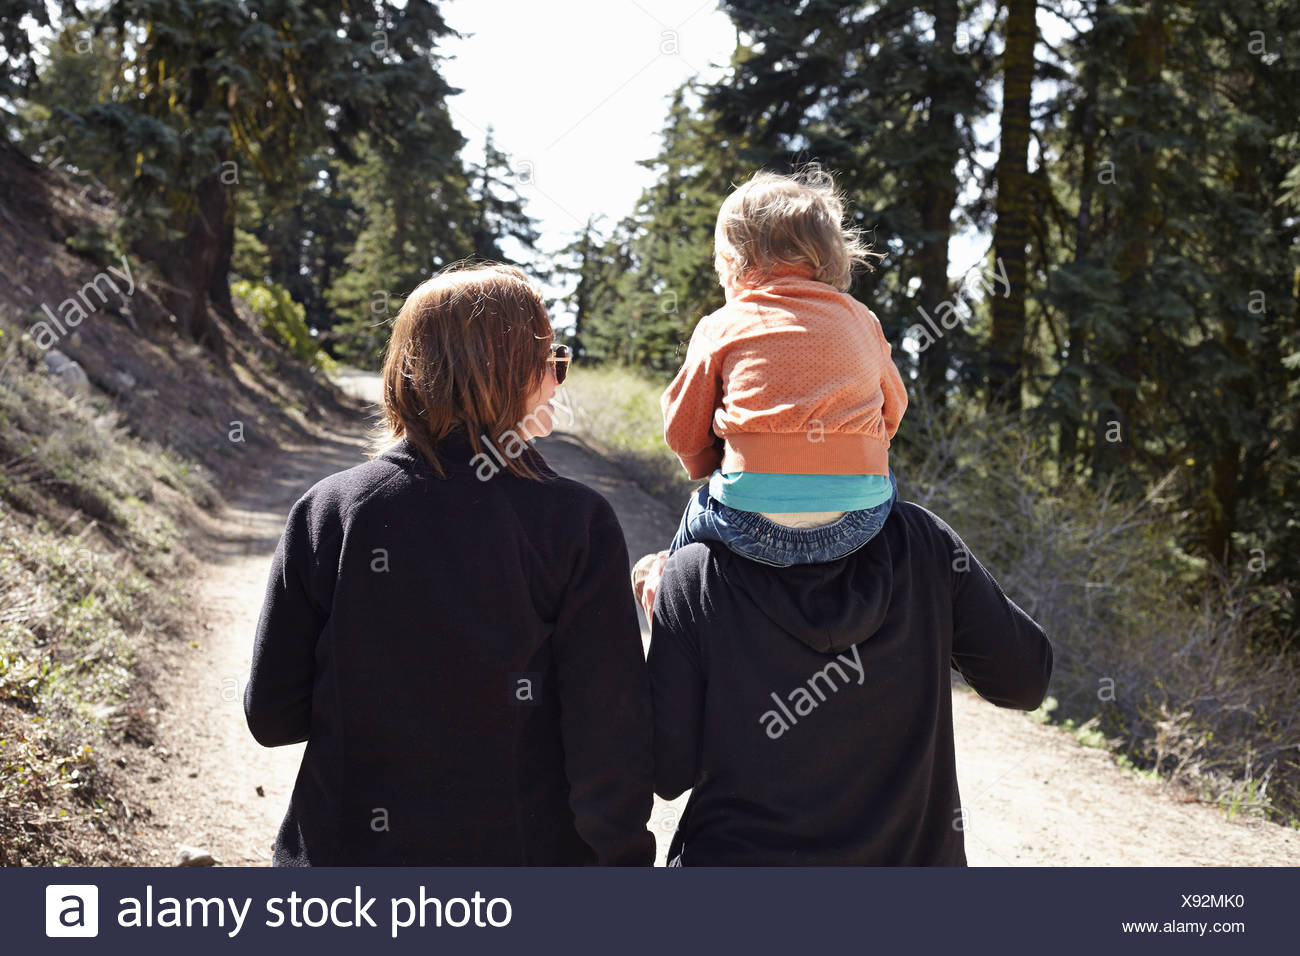 Women walking through forest in Oregon, USA, with toddler sitting on shoulders - Stock Image